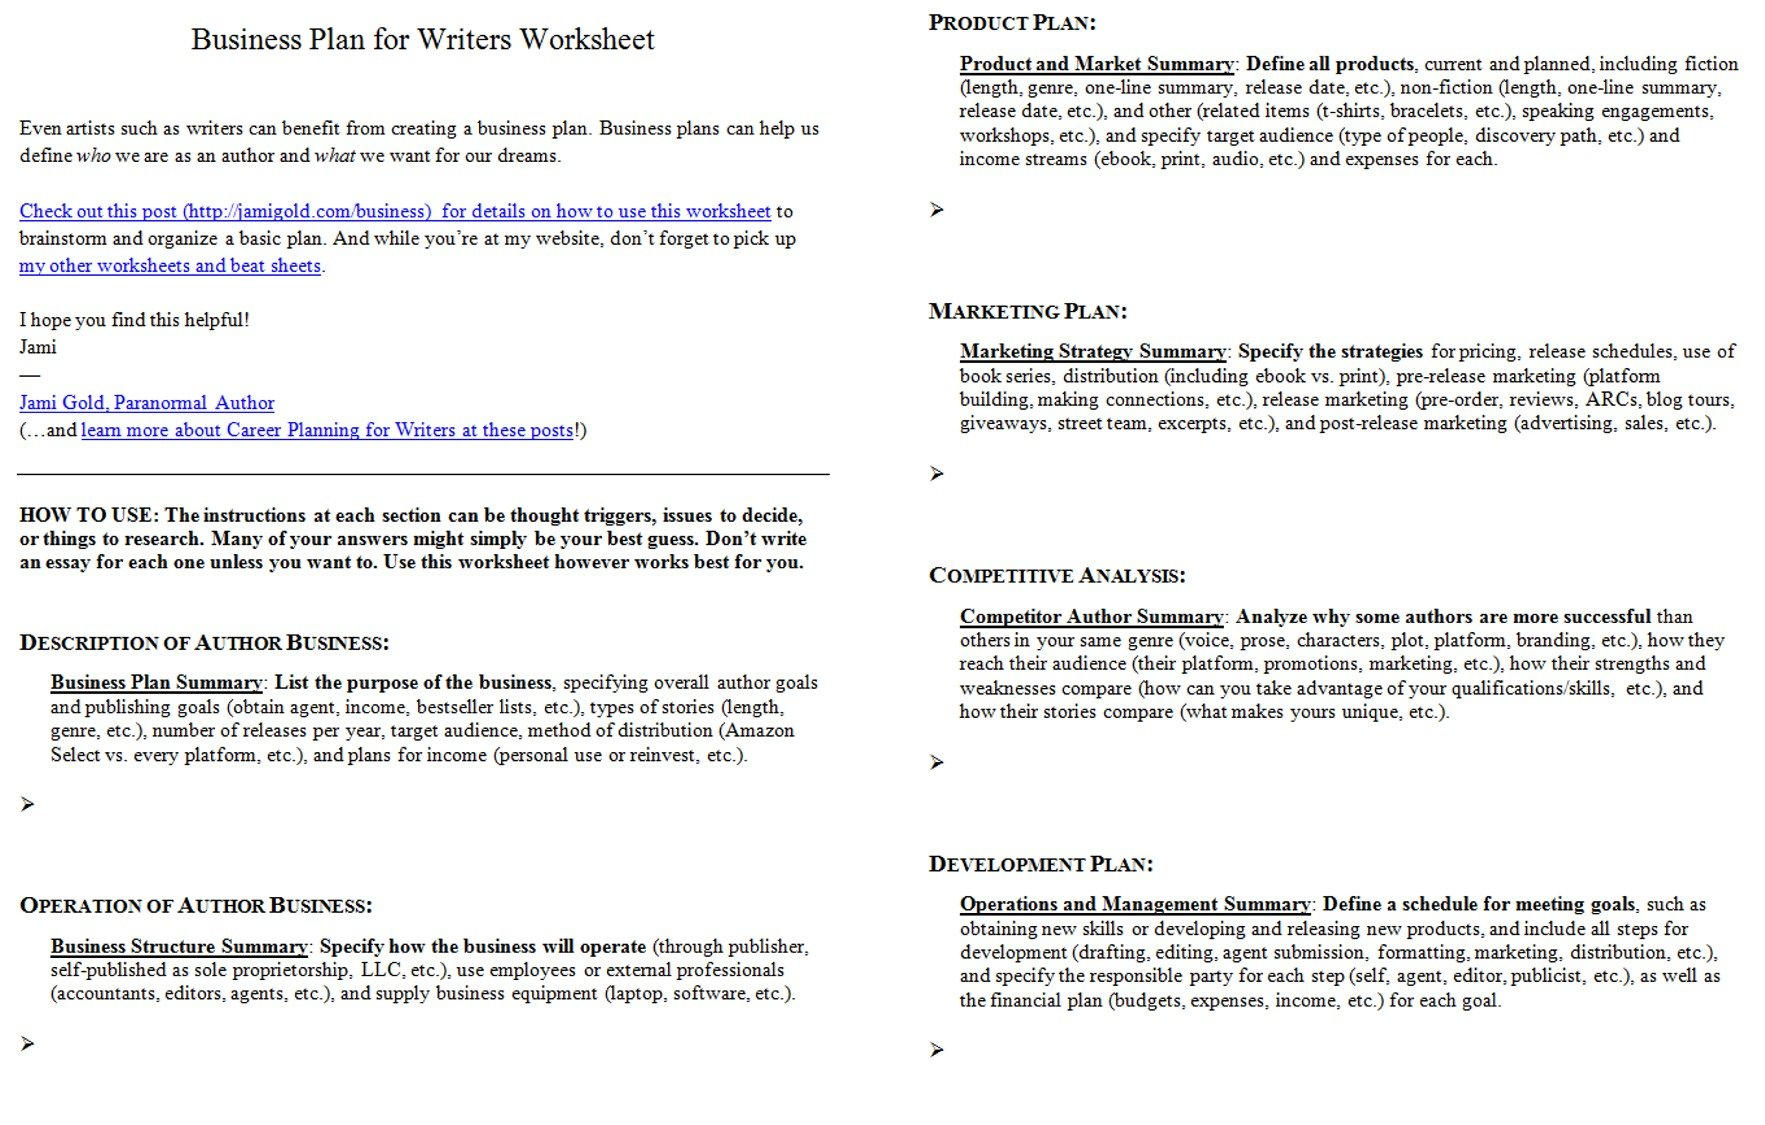 Introducing The Business Plan For Writers Worksheet  Jami Gold With Business Plan Worksheet